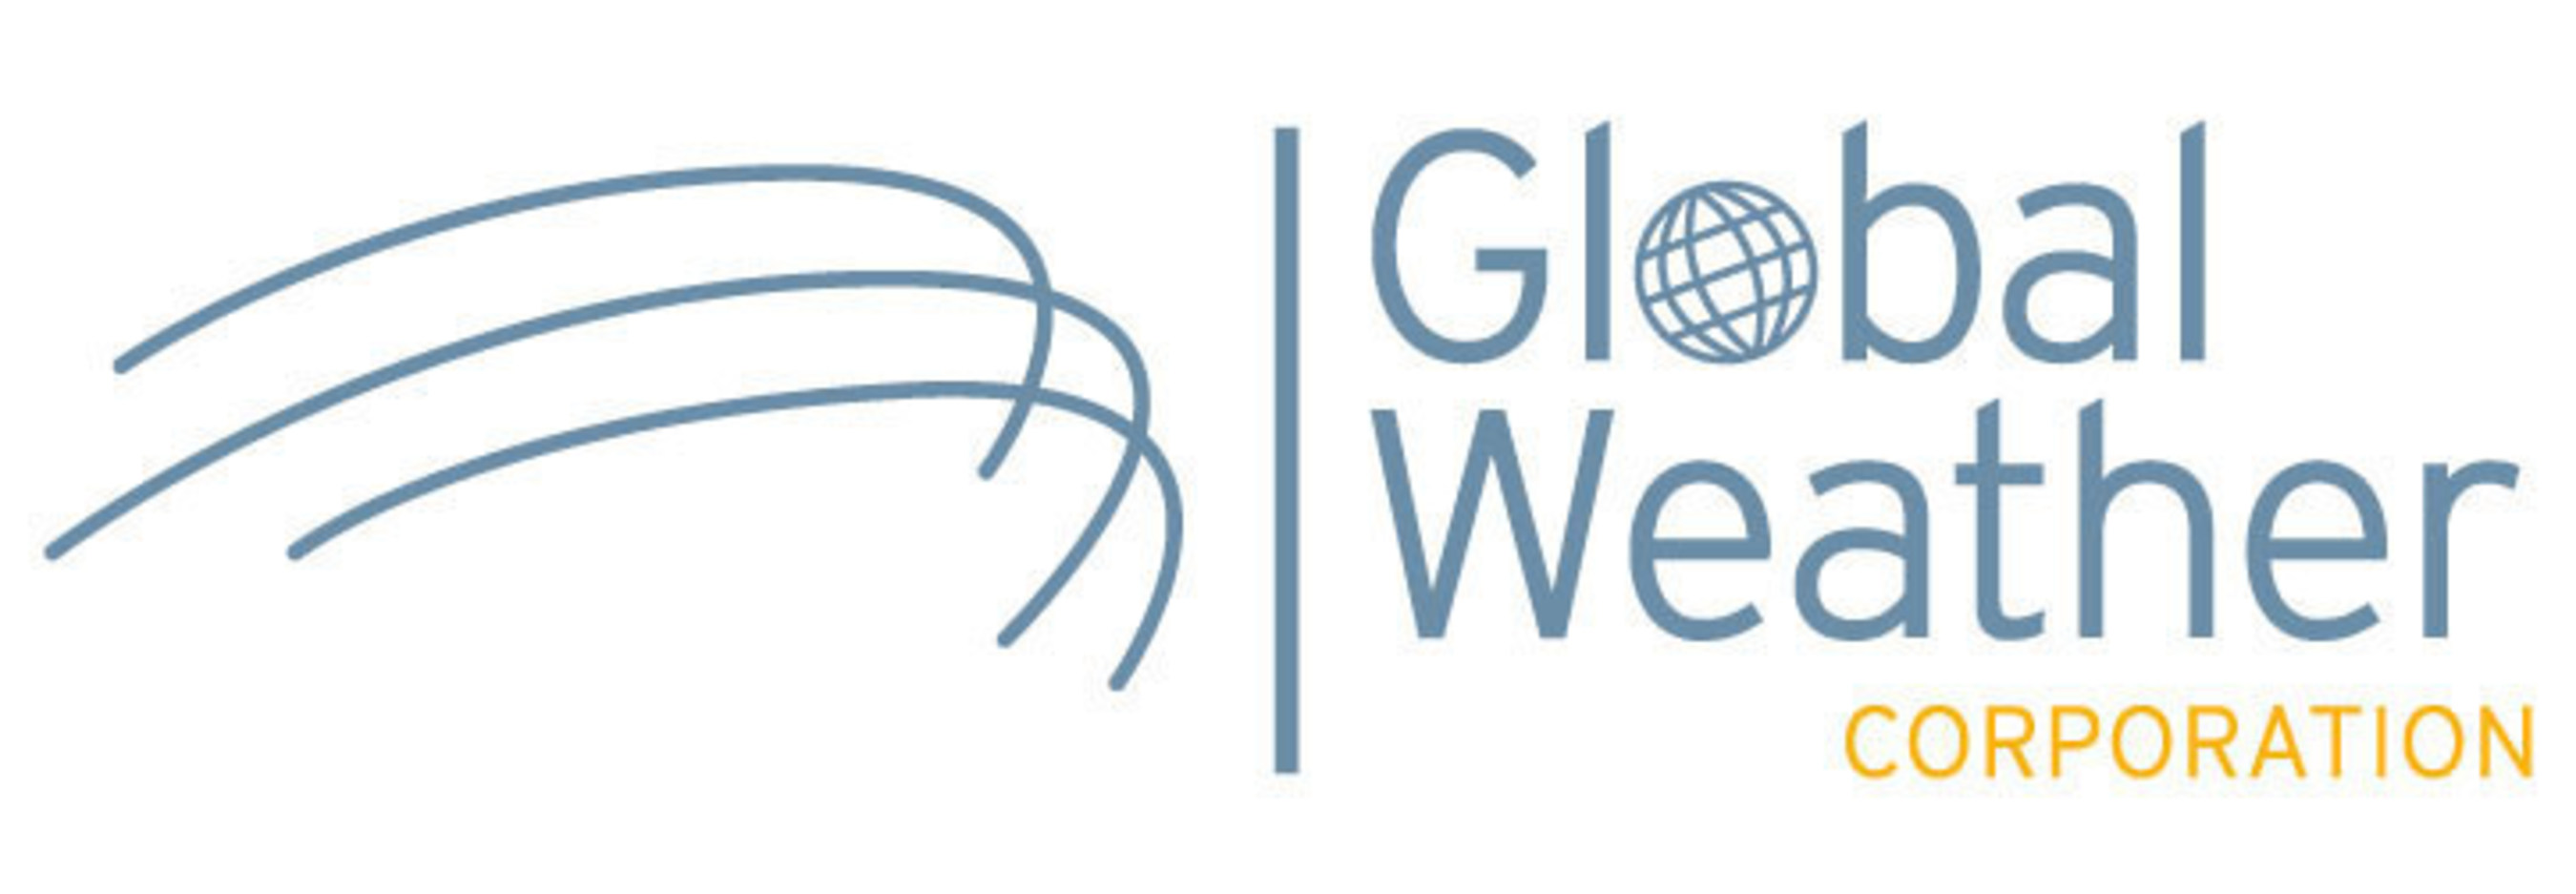 Global Weather Corporation Named Most Accurate Temperature Forecast Provider in the World